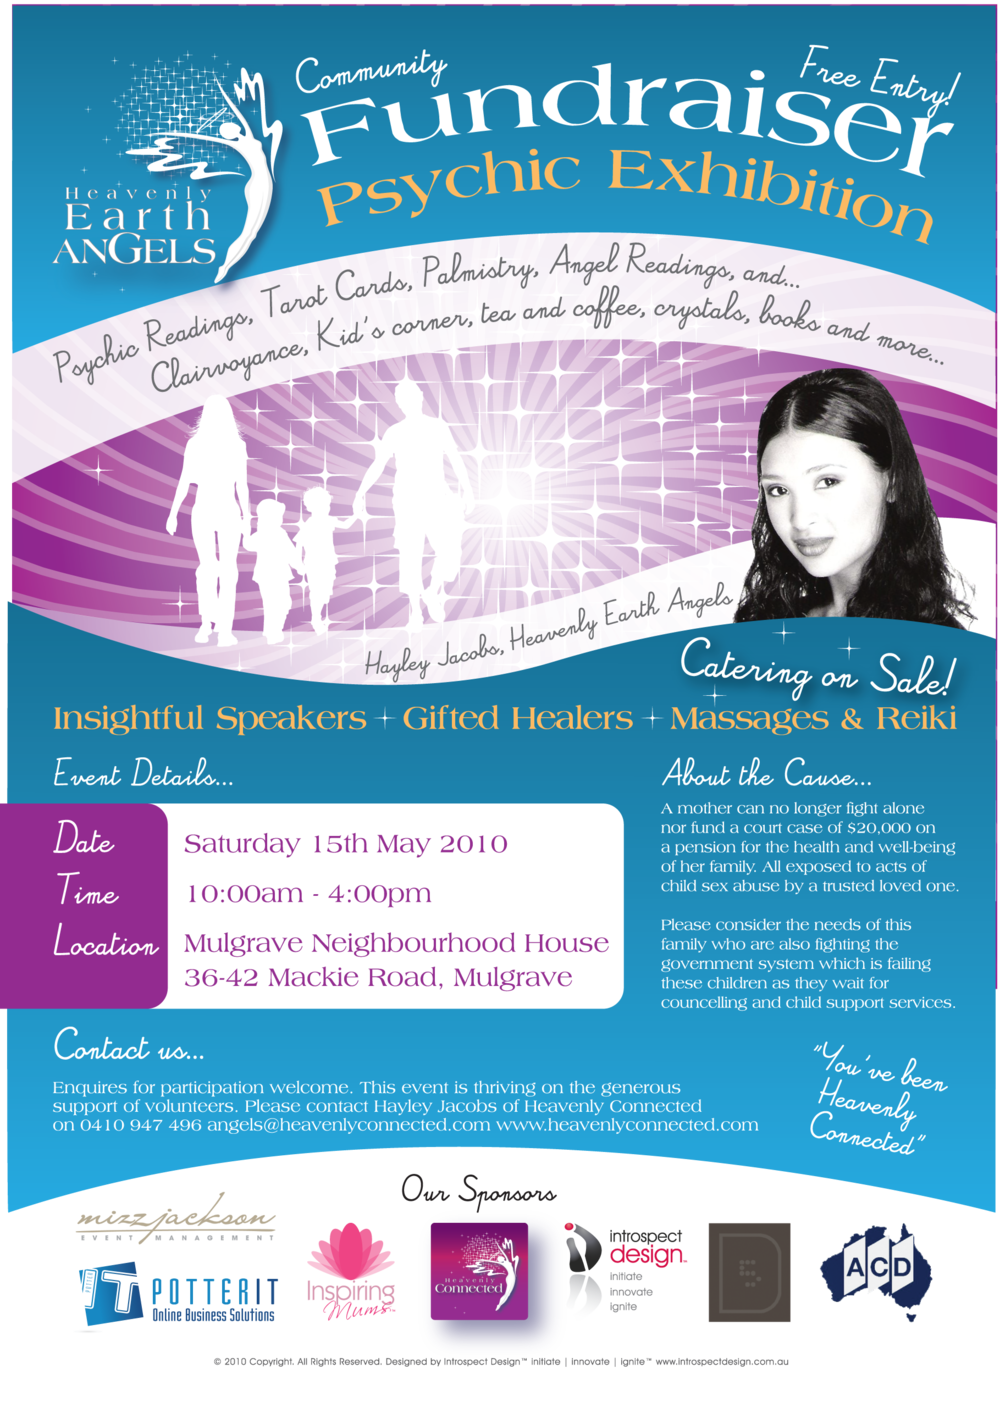 Heavenly Earth Angels Fundraiser - Guest Speaker & Sponsor - Raised $2000 for a struggling single mother